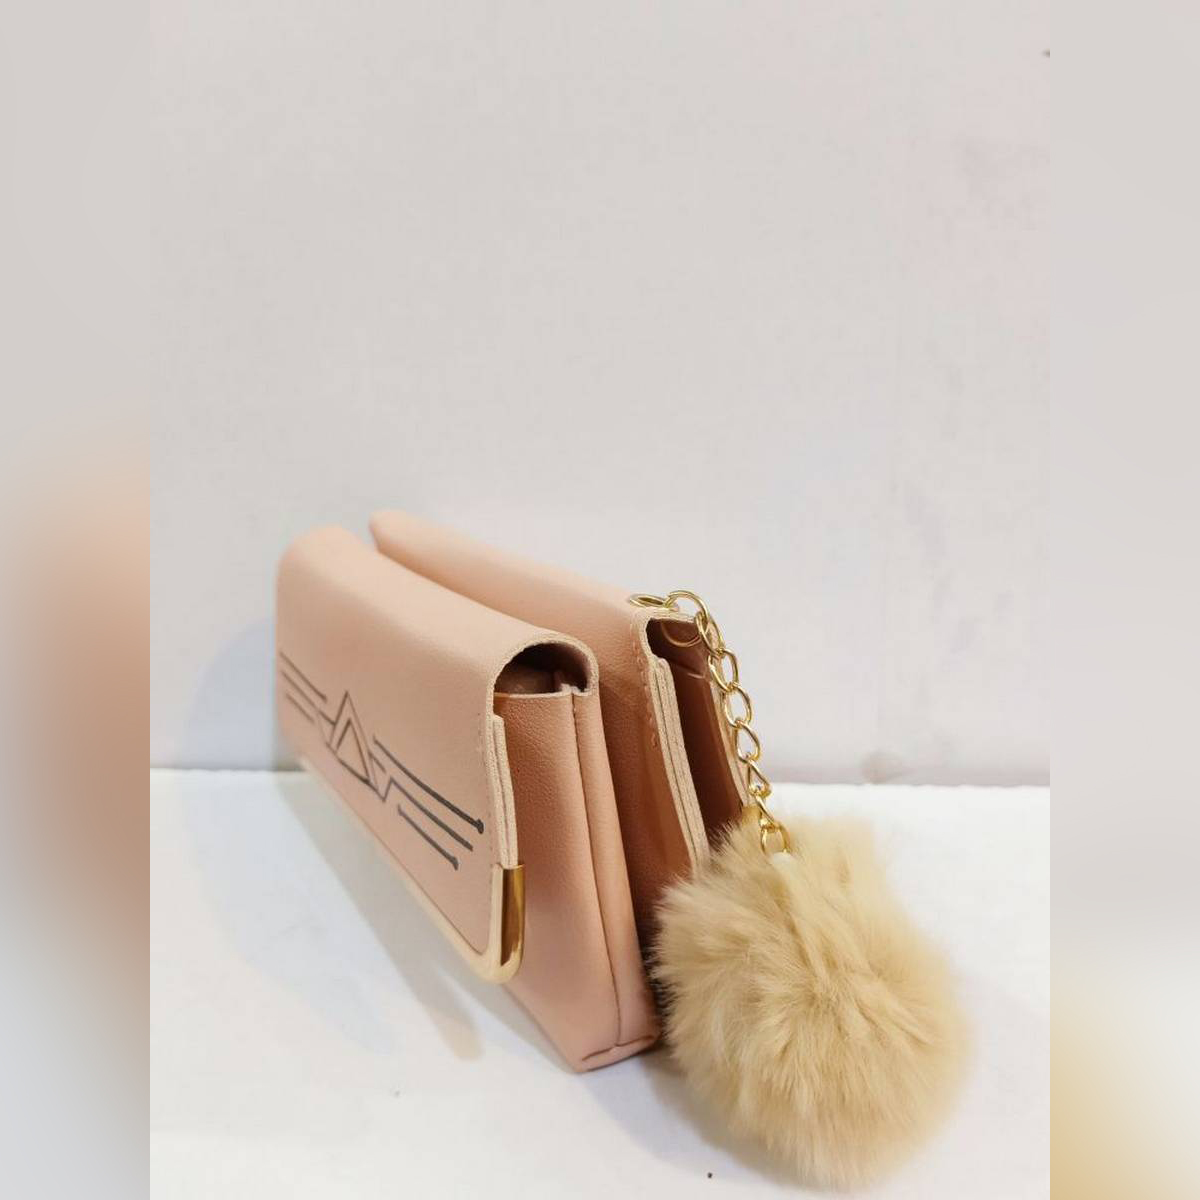 Double side Pu Leather Material Hand Clutch.inside Full size Mobile pocket